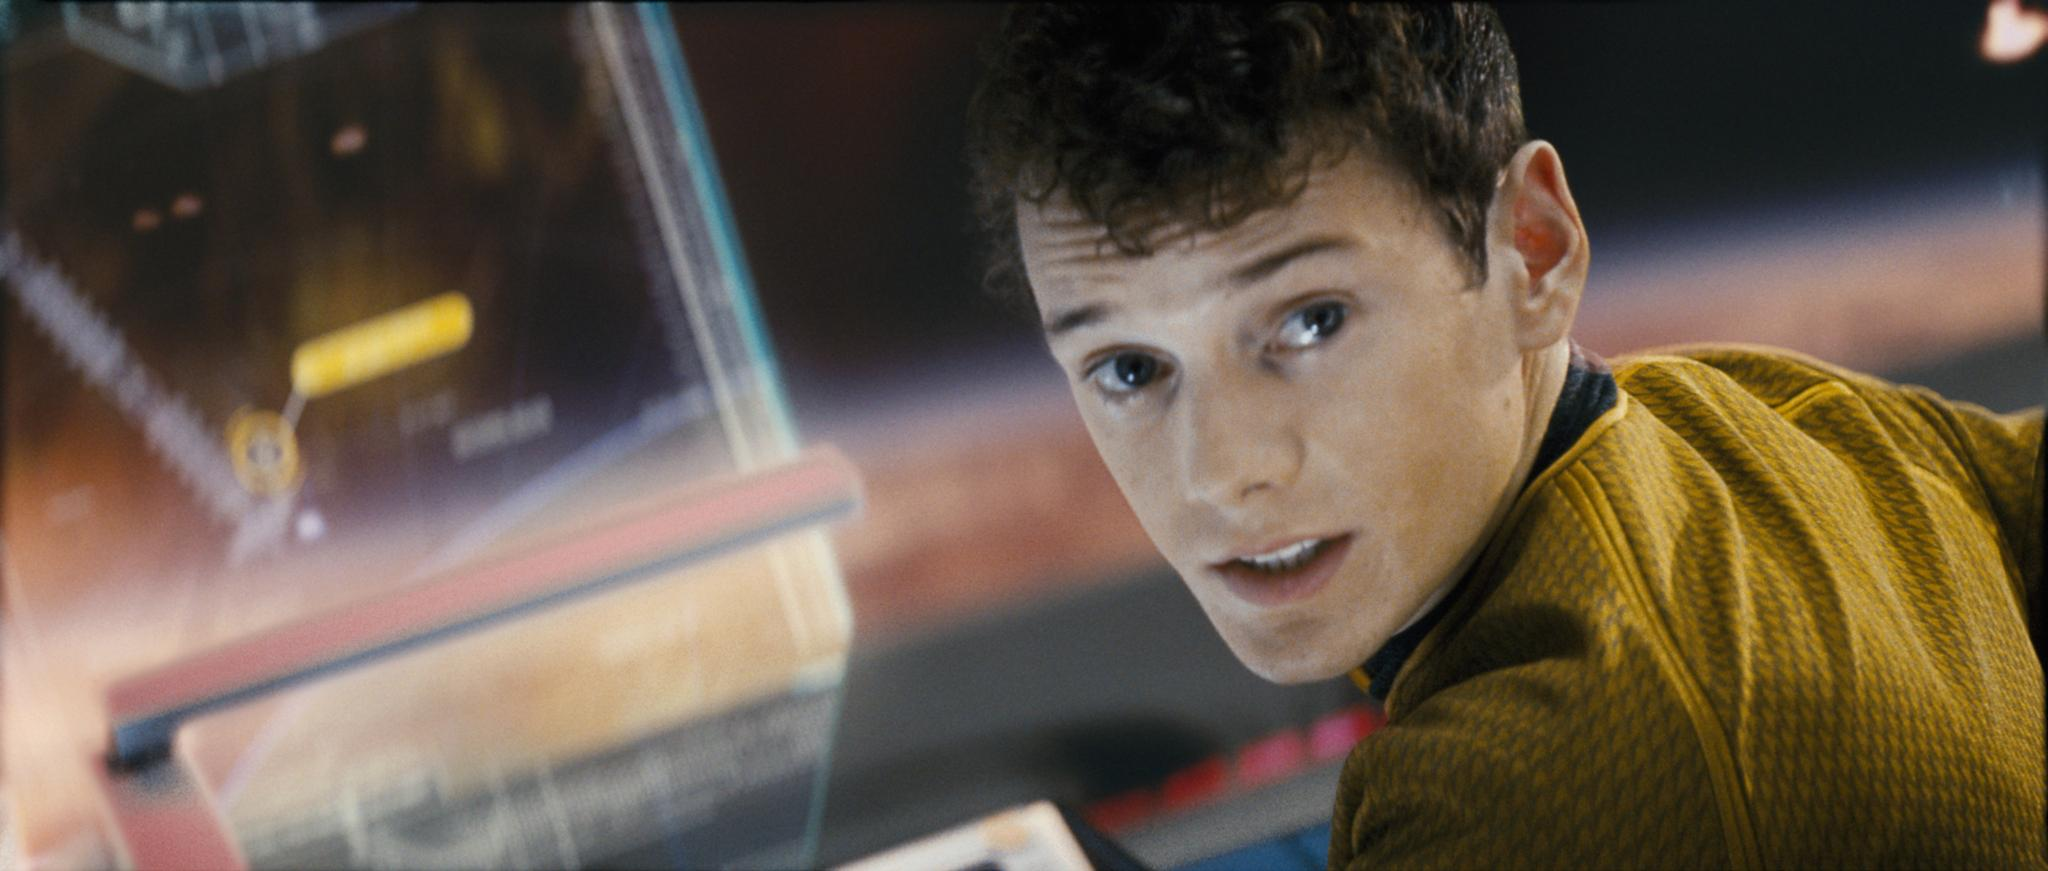 Chekov Will Not be Recast for Next 'Star Trek' Movie